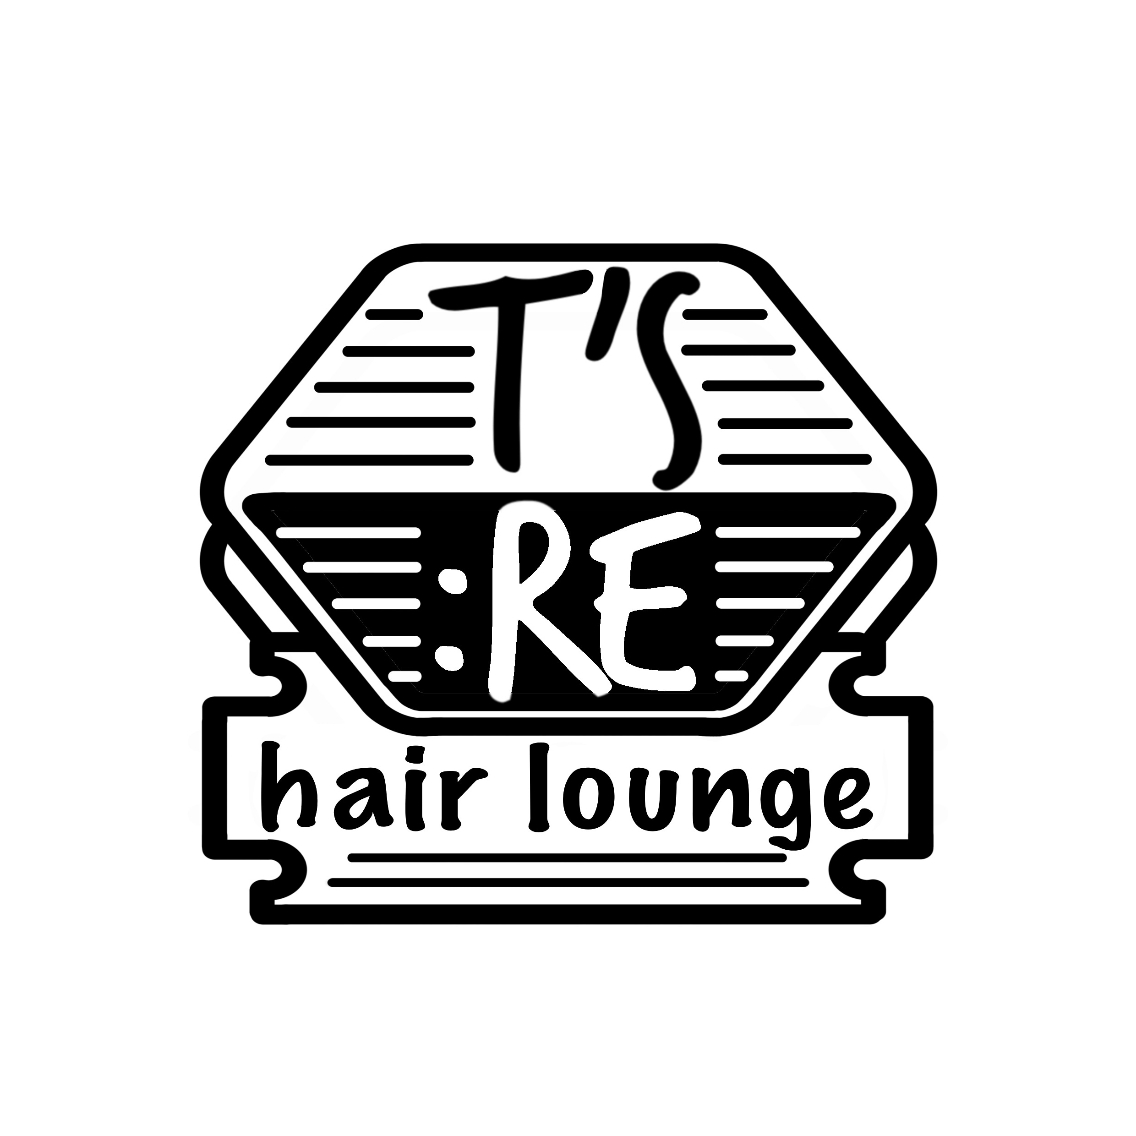 T'S:RE hair lounge